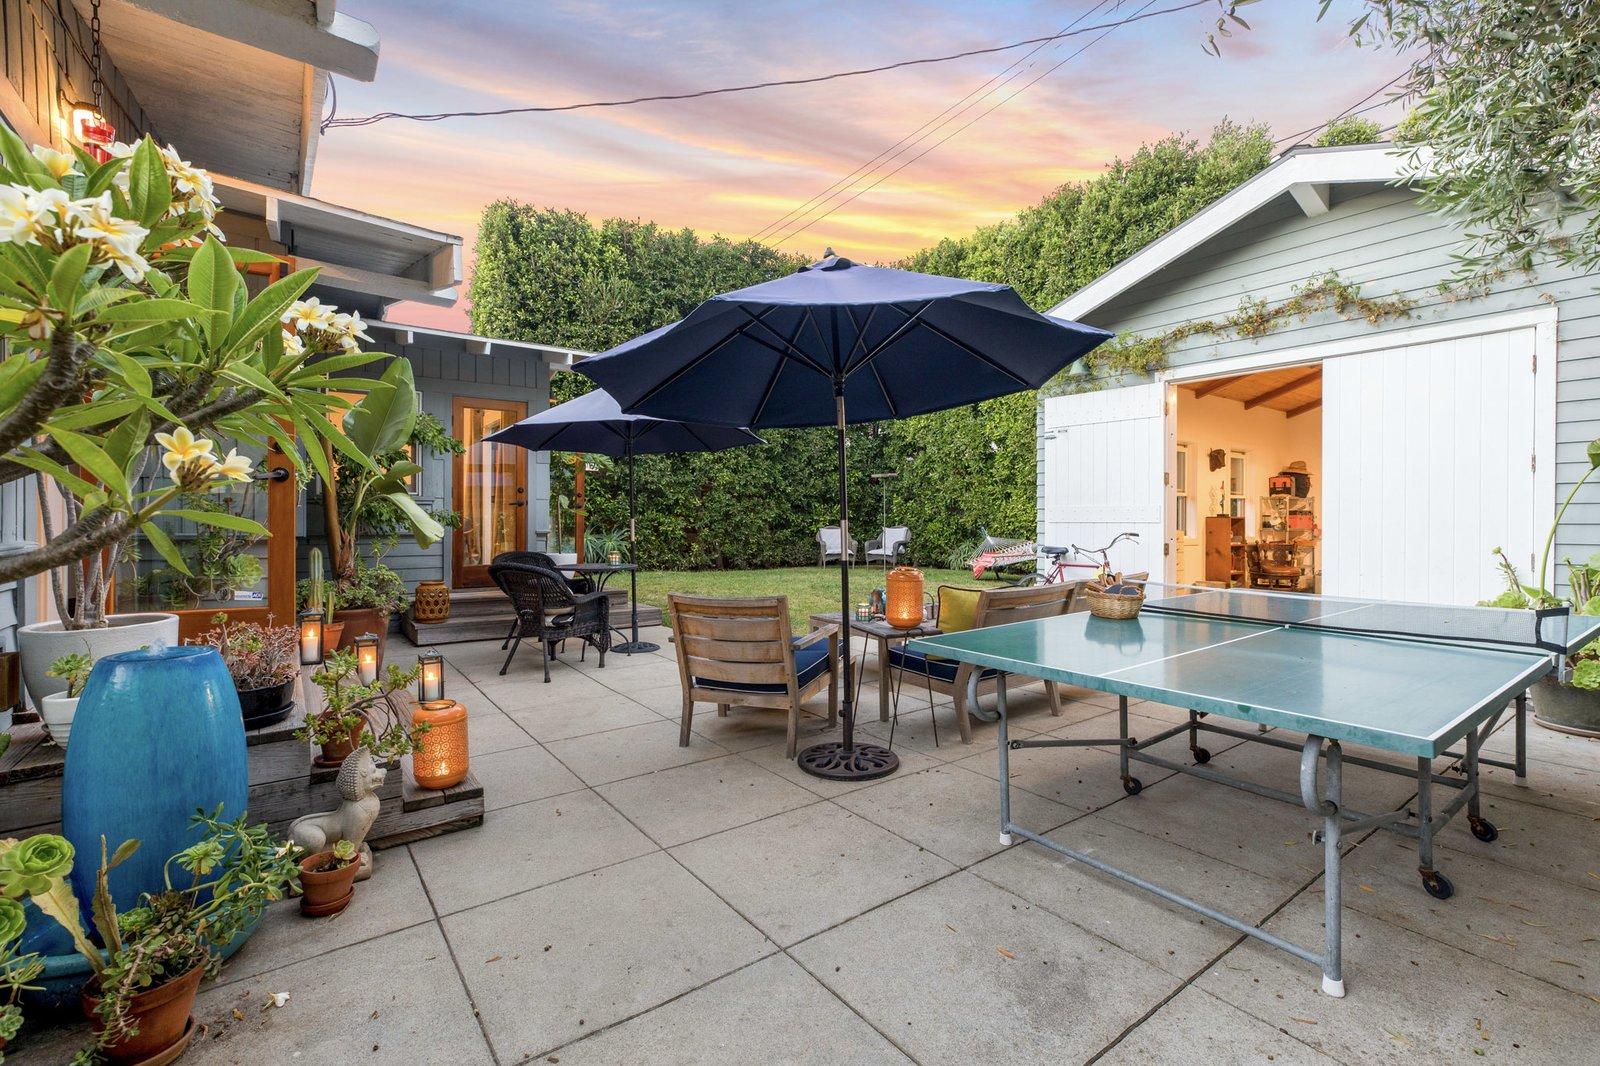 The former garage was converted into a studio space by the creative homeowners.  Photo 13 of 16 in An Artfully Reimagined California Craftsman Asks $1.2M